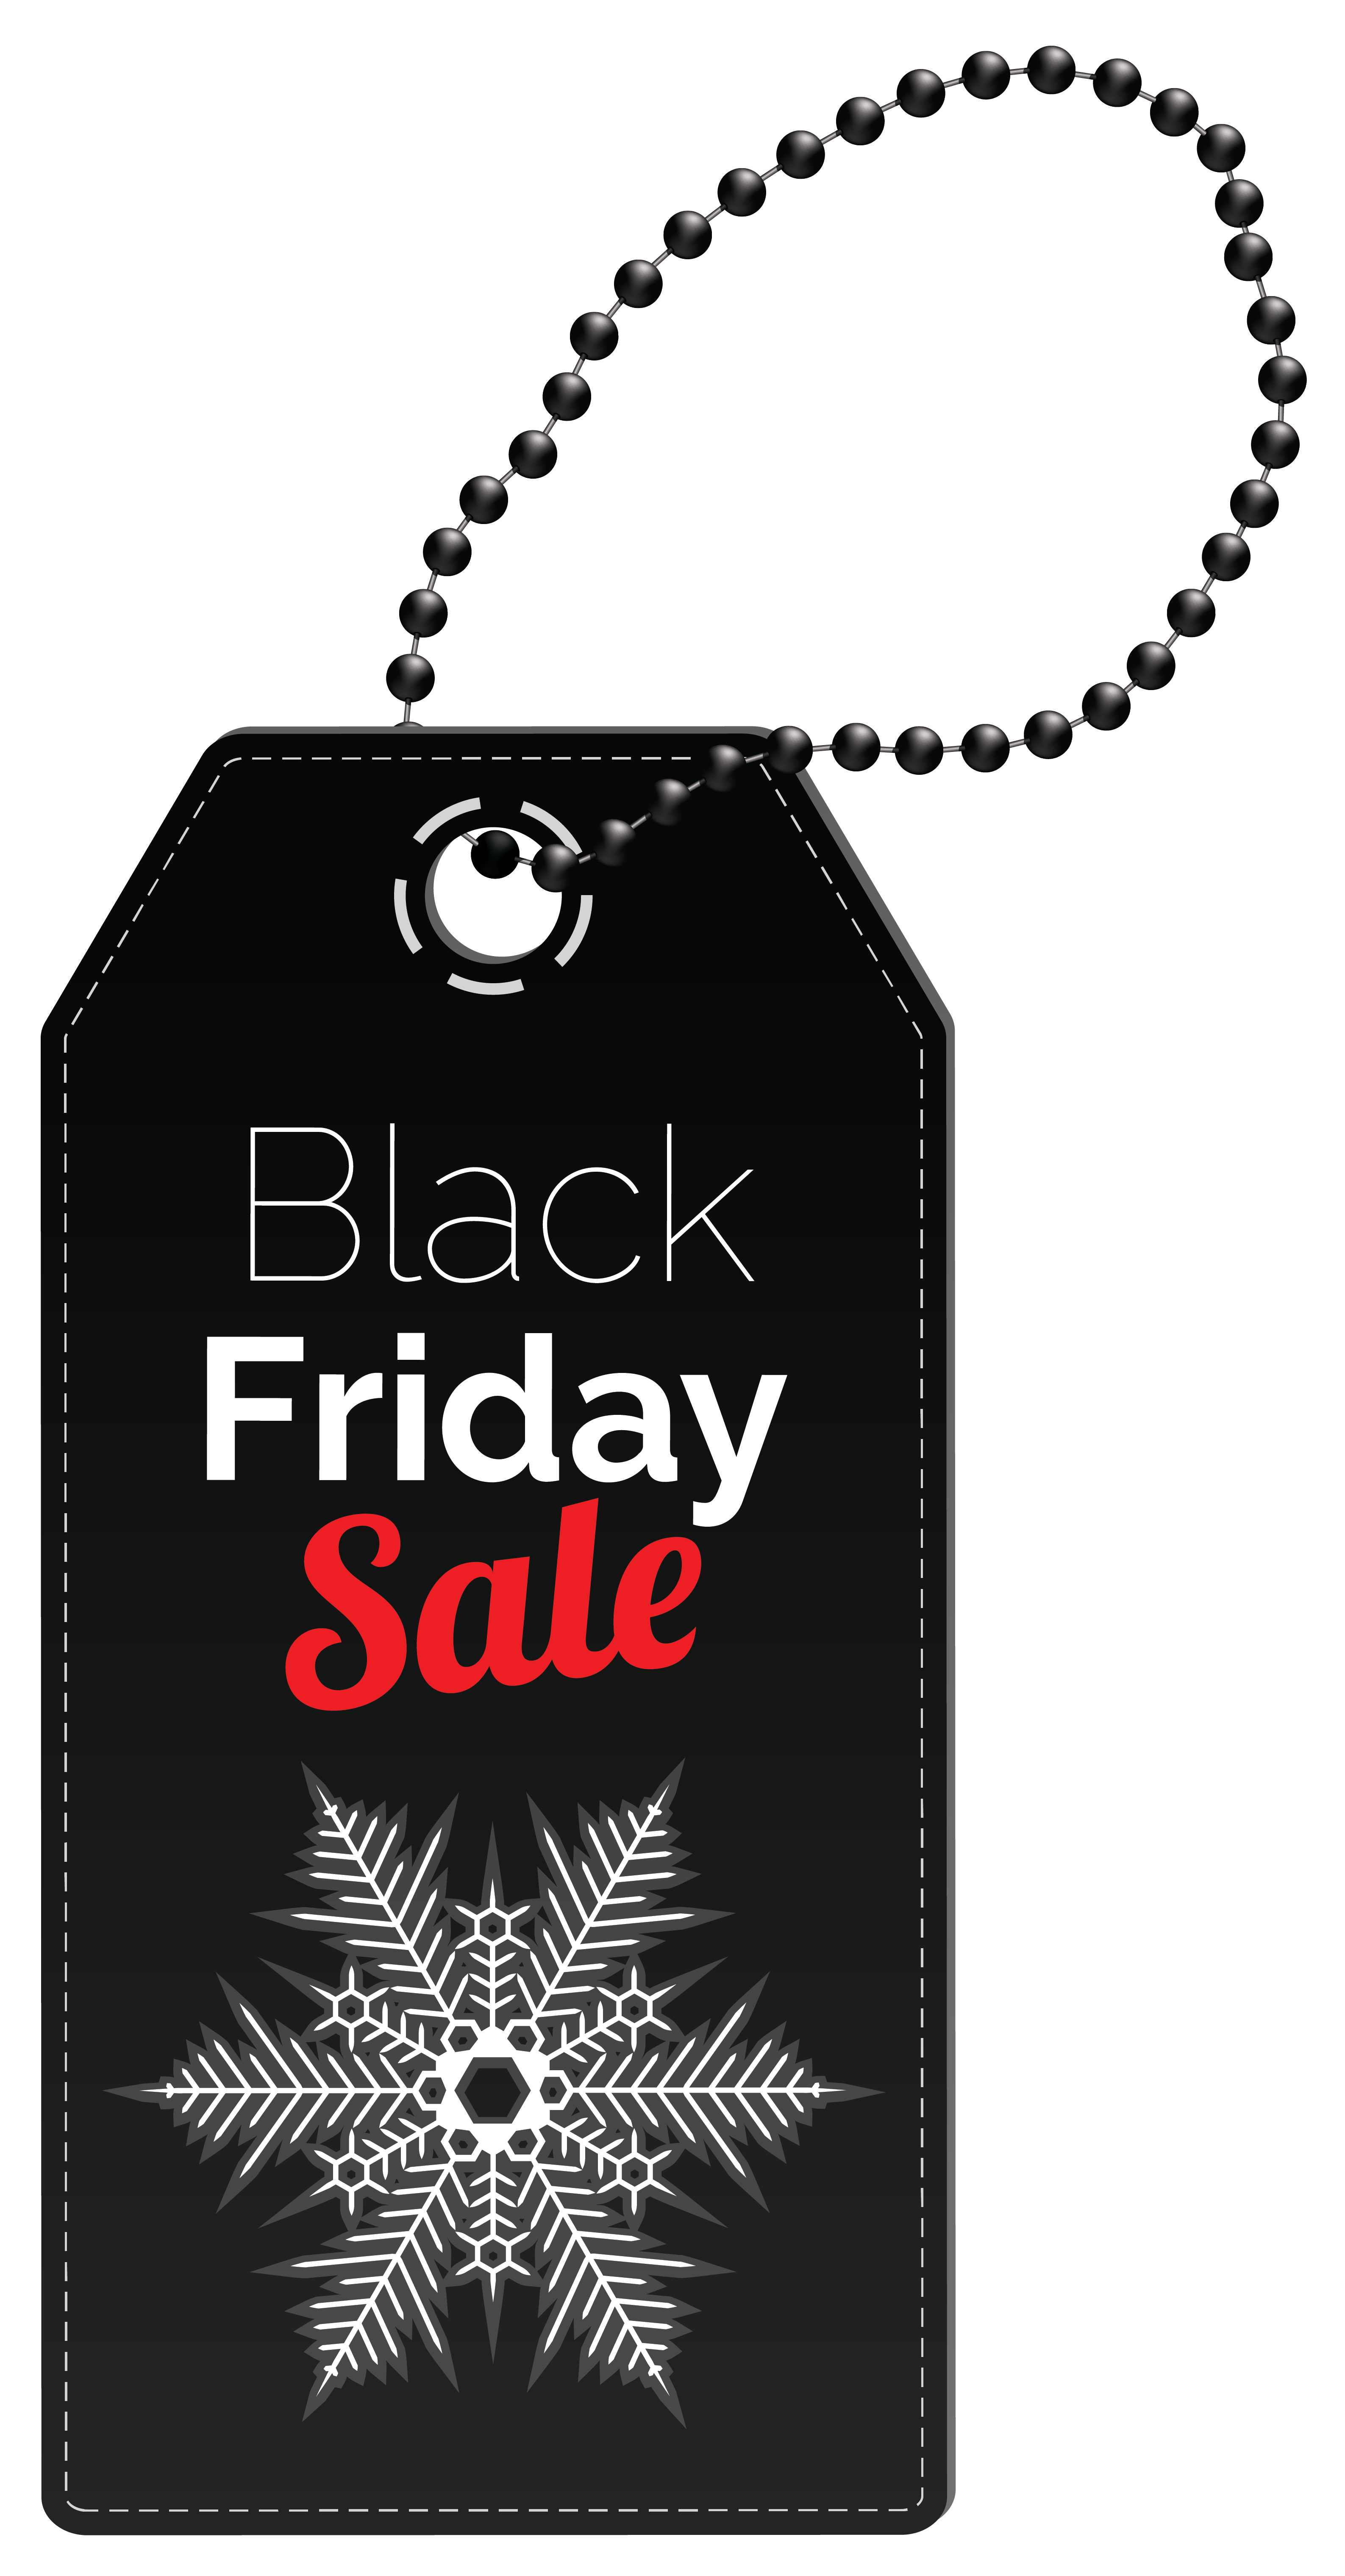 Tie sale tag clipart banner black and white Free Black Tag Cliparts, Download Free Clip Art, Free Clip ... banner black and white